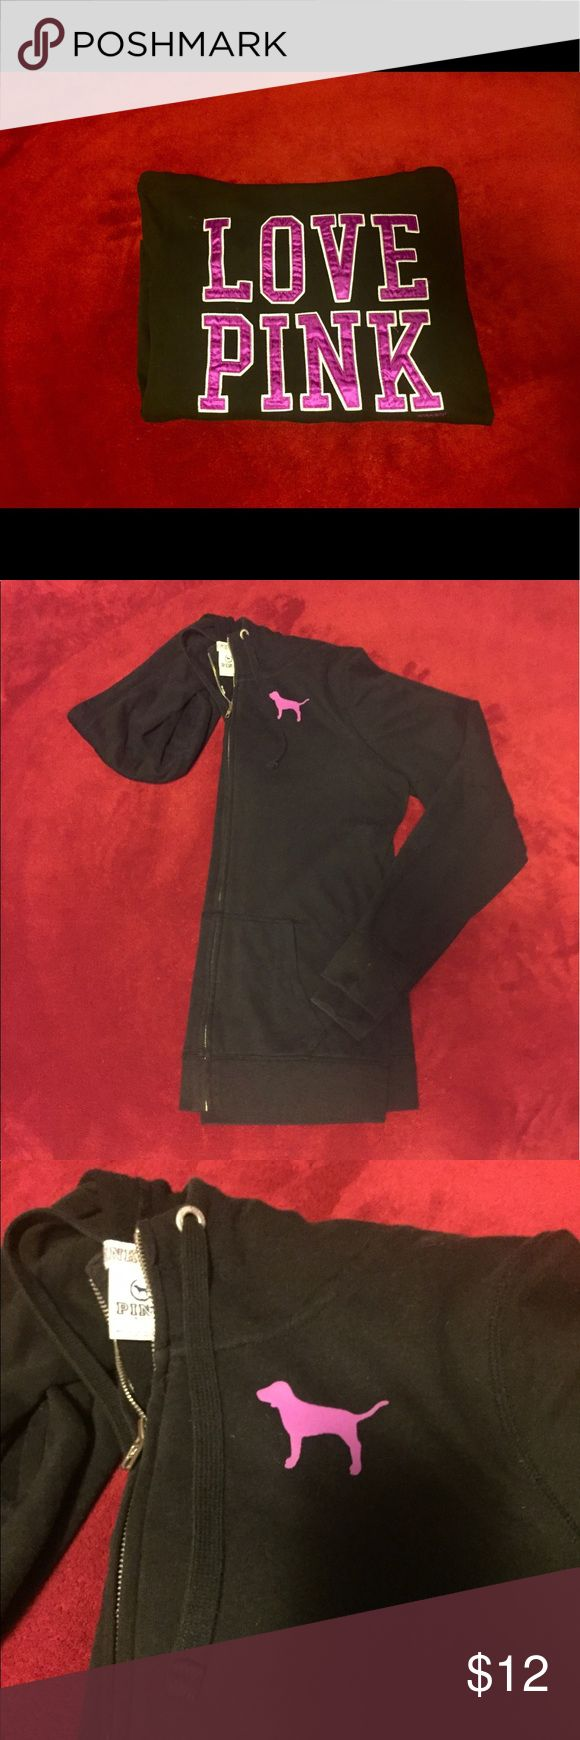 """VS Pink zip up! This is the perfect zip up to get up and go! Warm cozy lining with hood. """"LOVE PINK"""" decal on back. Black color perfect to pair with anything. Fits more like a large! PINK Victoria's Secret Tops Sweatshirts & Hoodies"""